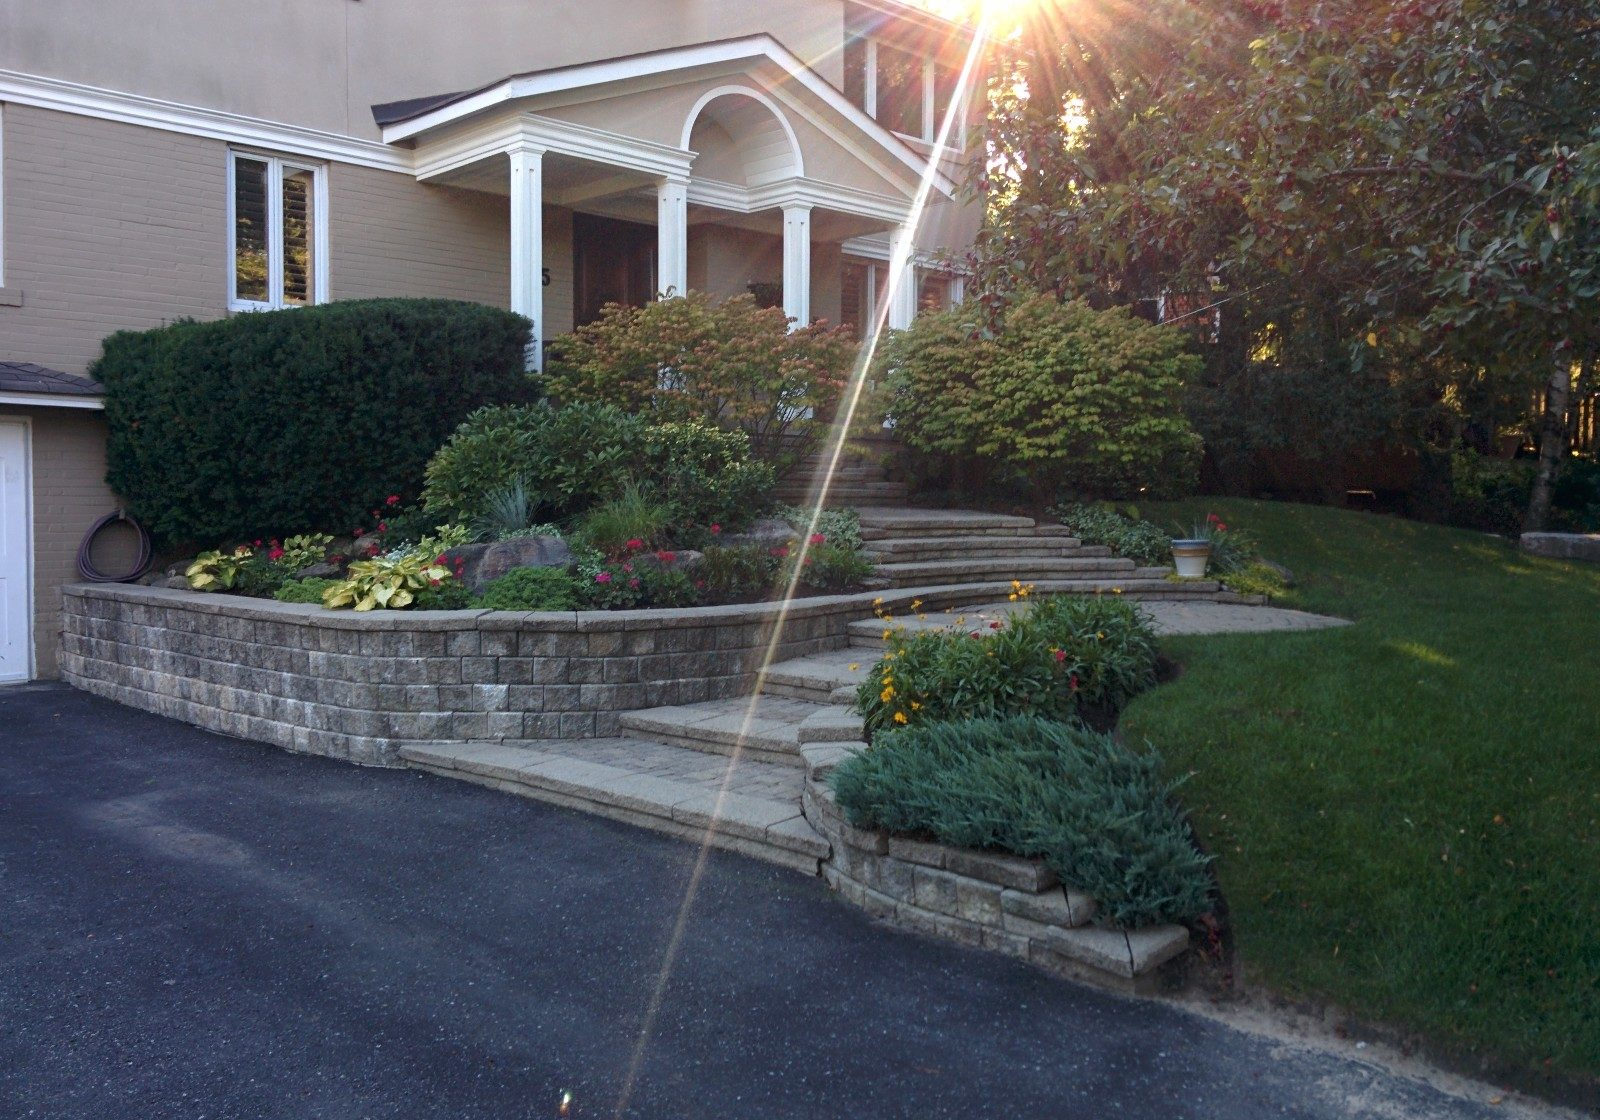 Landscape staging services from Gardenzilla